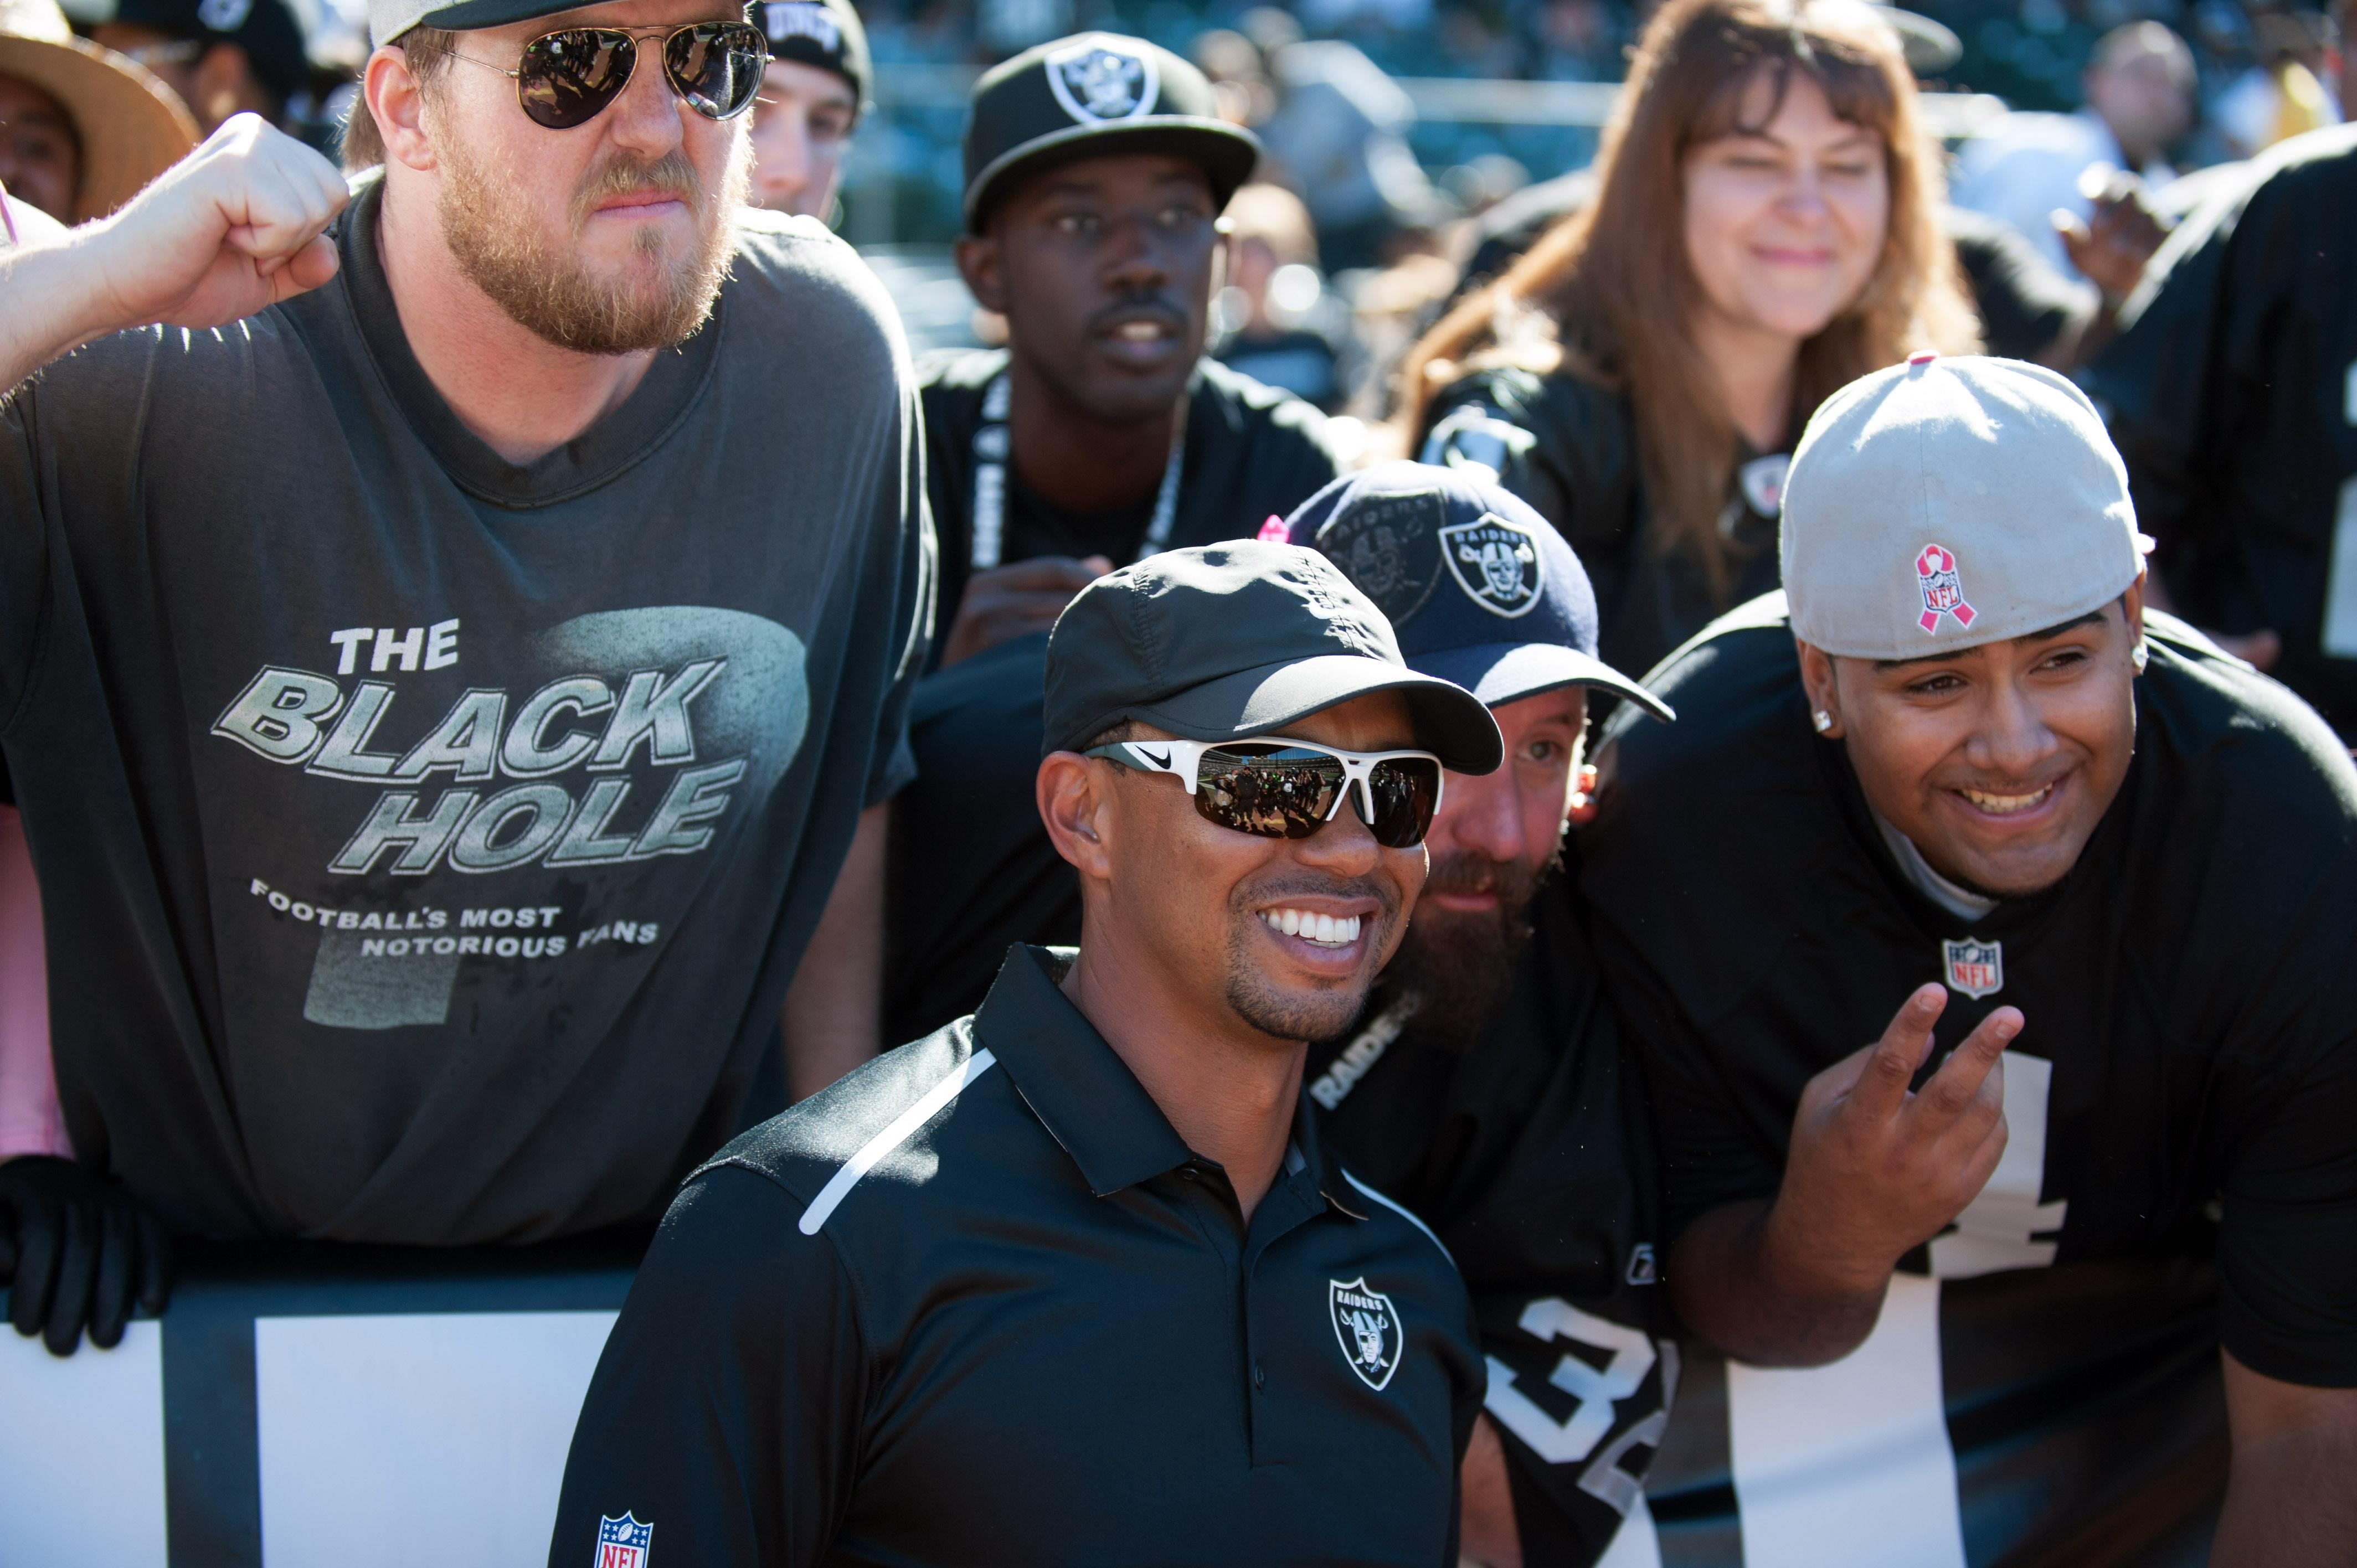 Tiger Woods hangs with Raiders fans during San Diego game